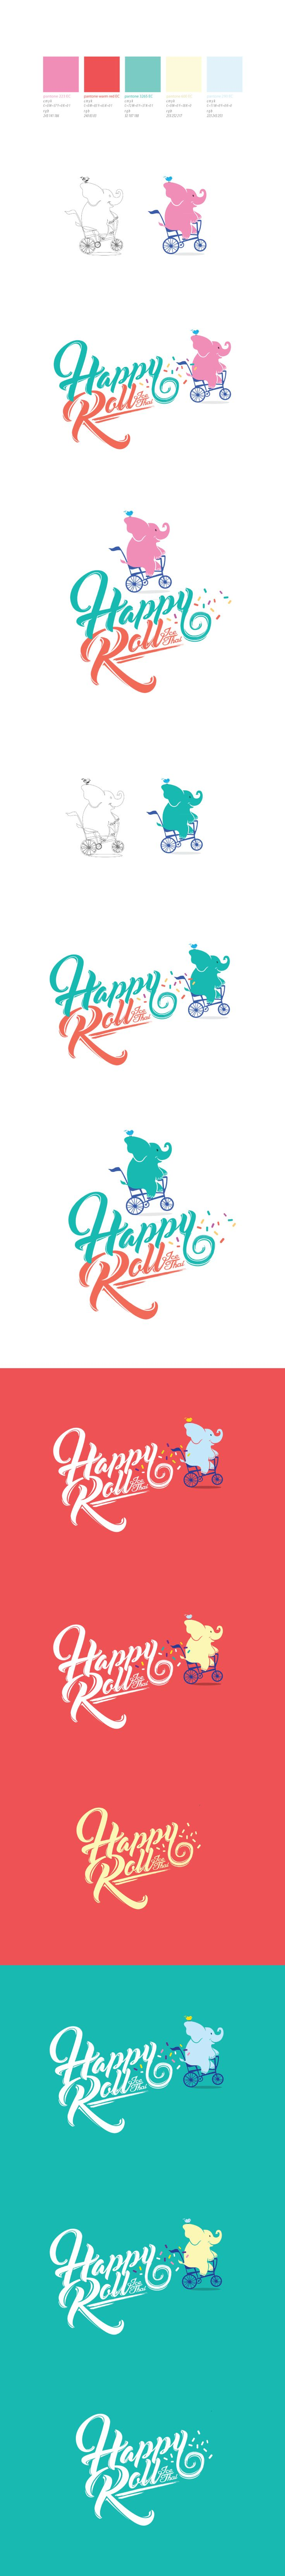 Happy Roll™ // Thailand Roll Ice Cream on Behance